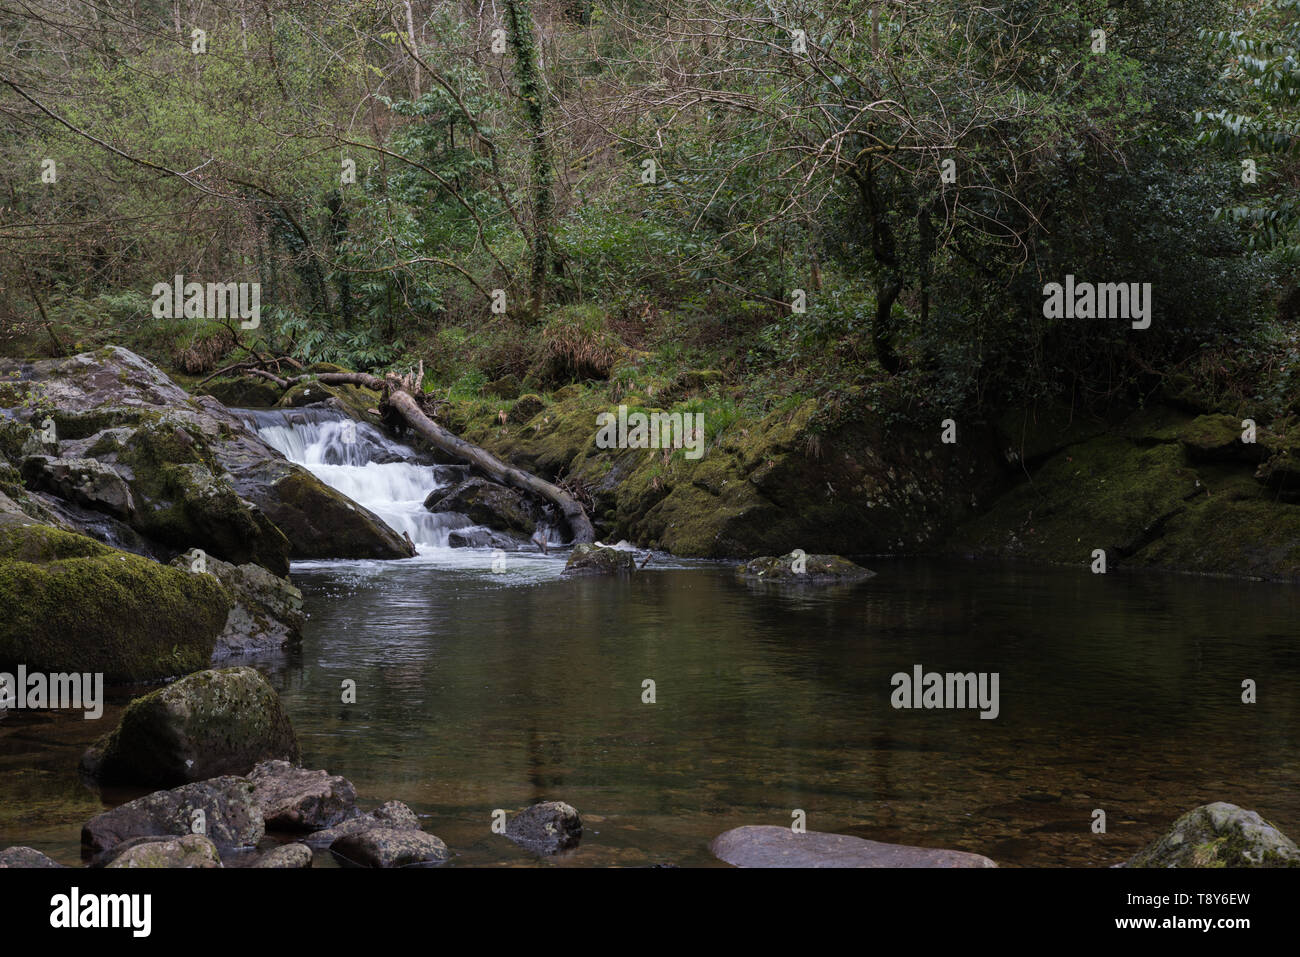 River Erme in Longtimber Woods, Ivybridge - Stock Image